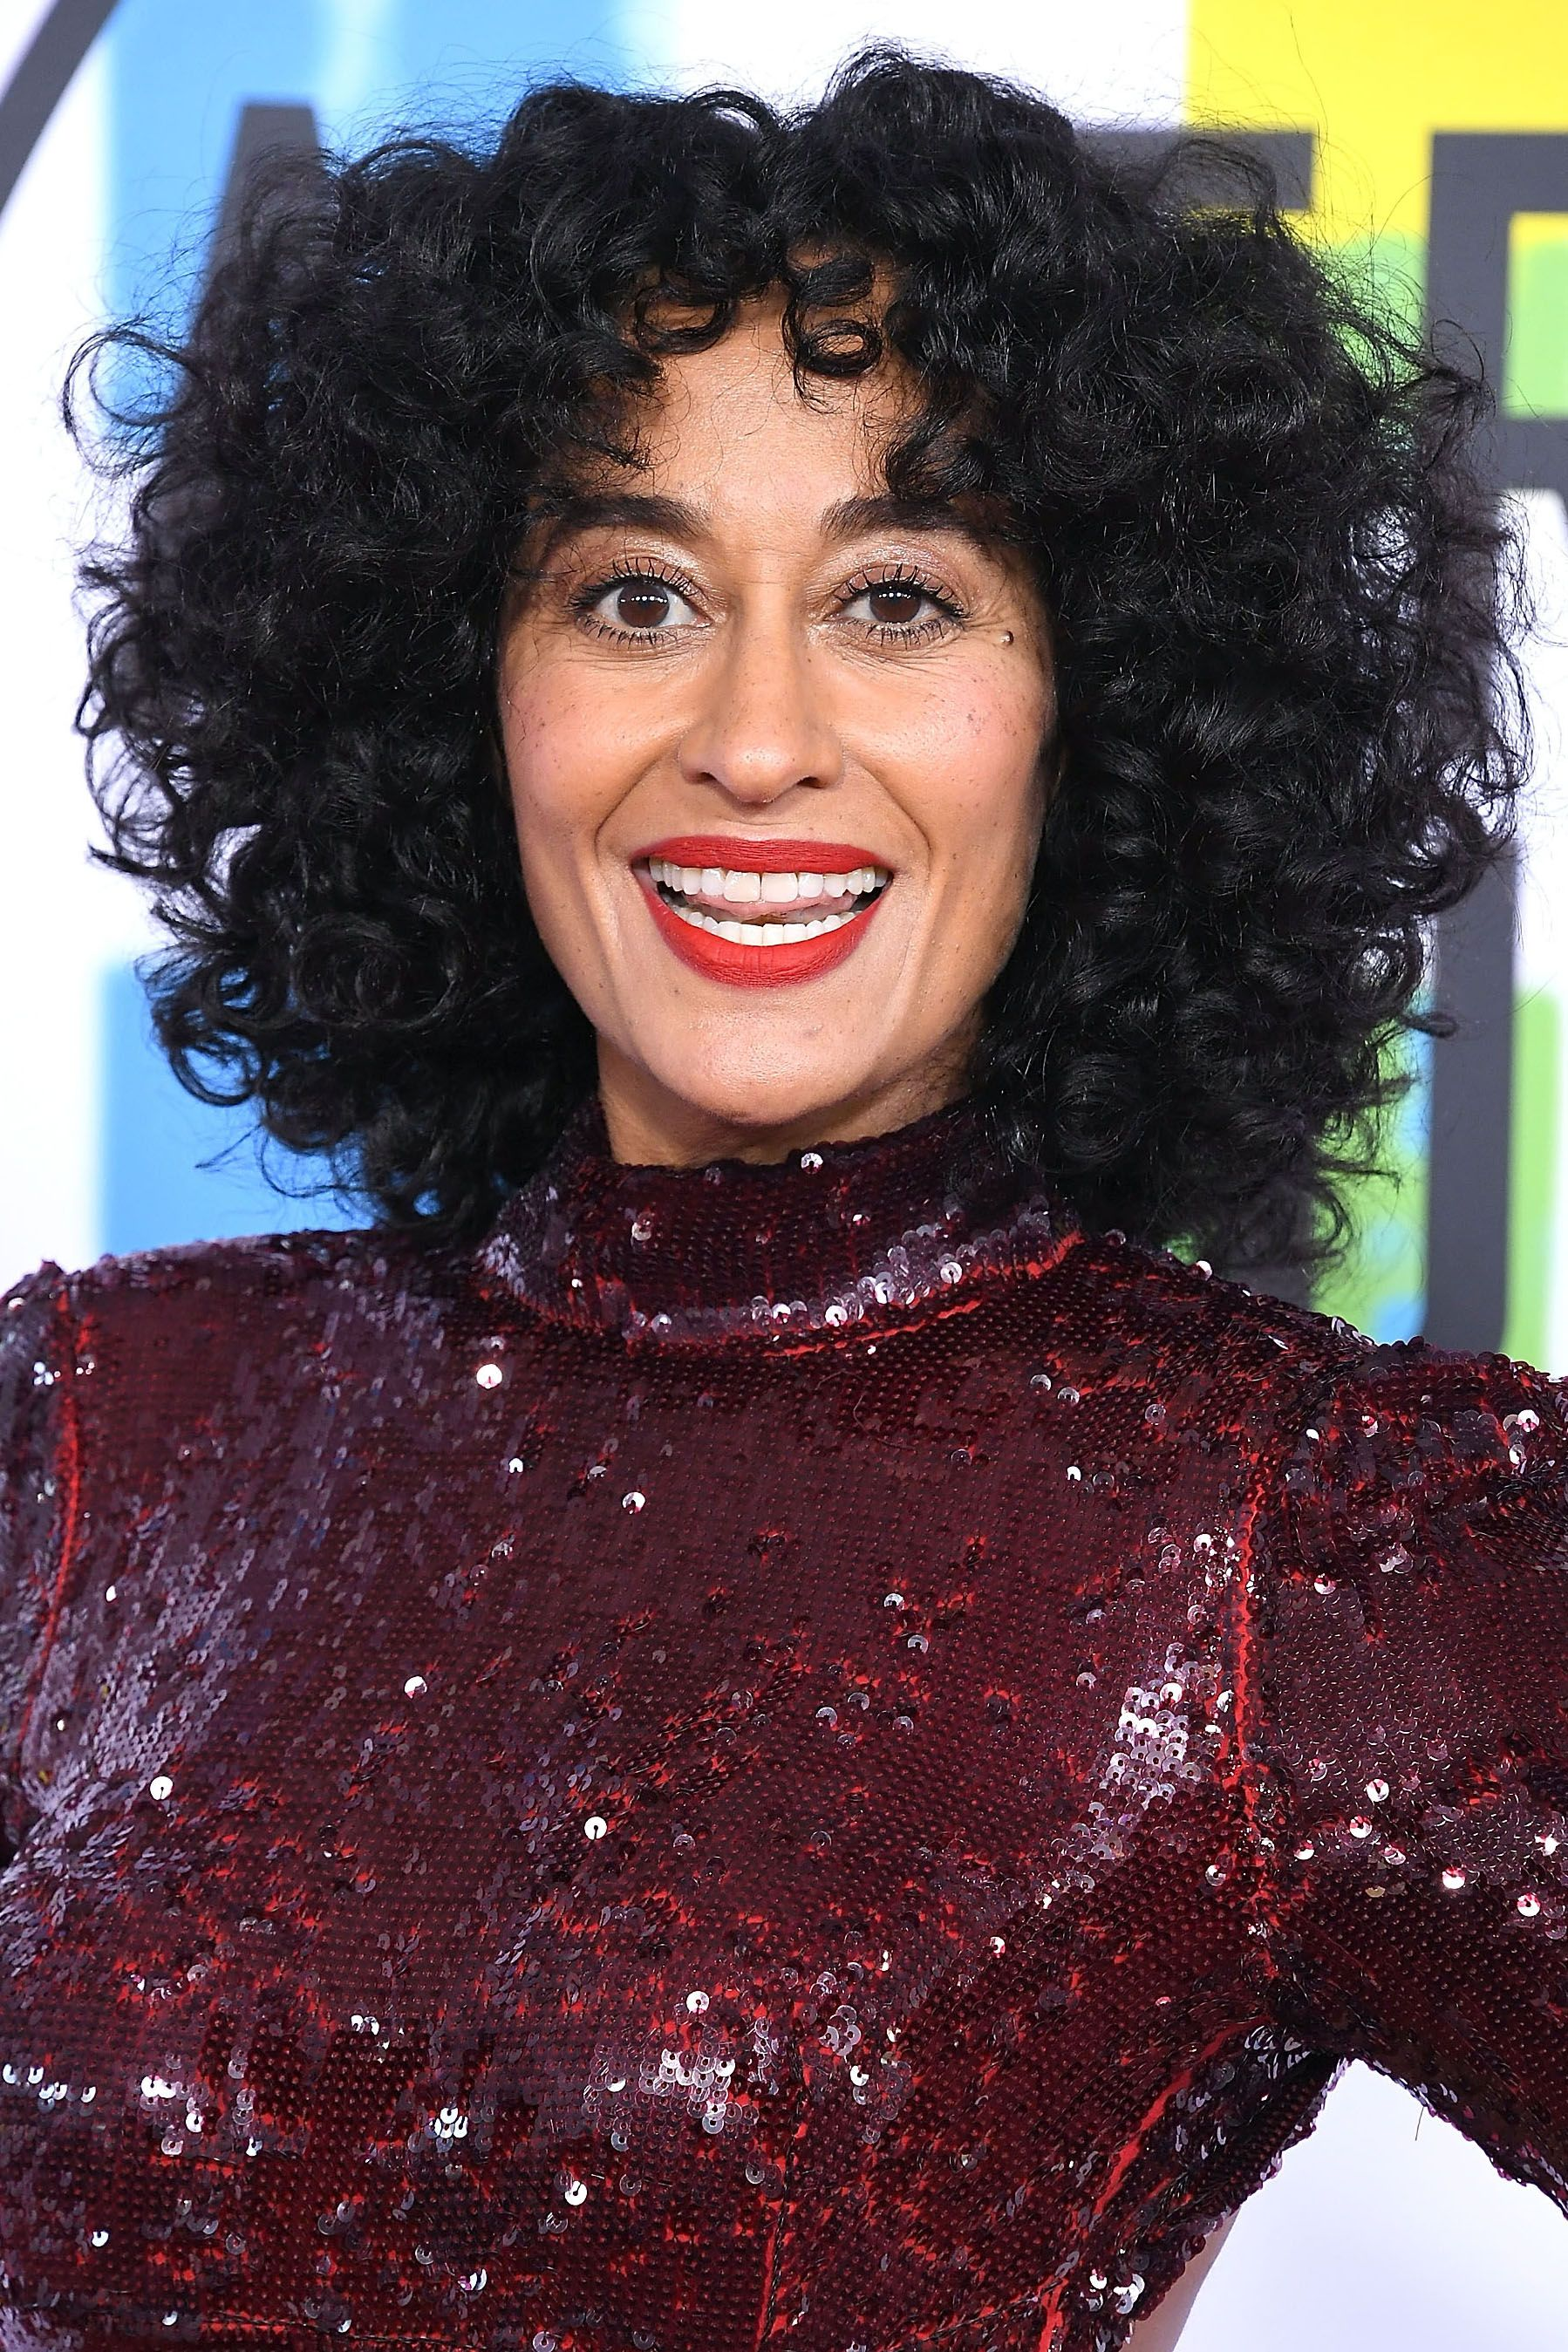 Curly-Twirls-with-Long-Front-Fringes Charming and Cute Hairstyles for Black Women